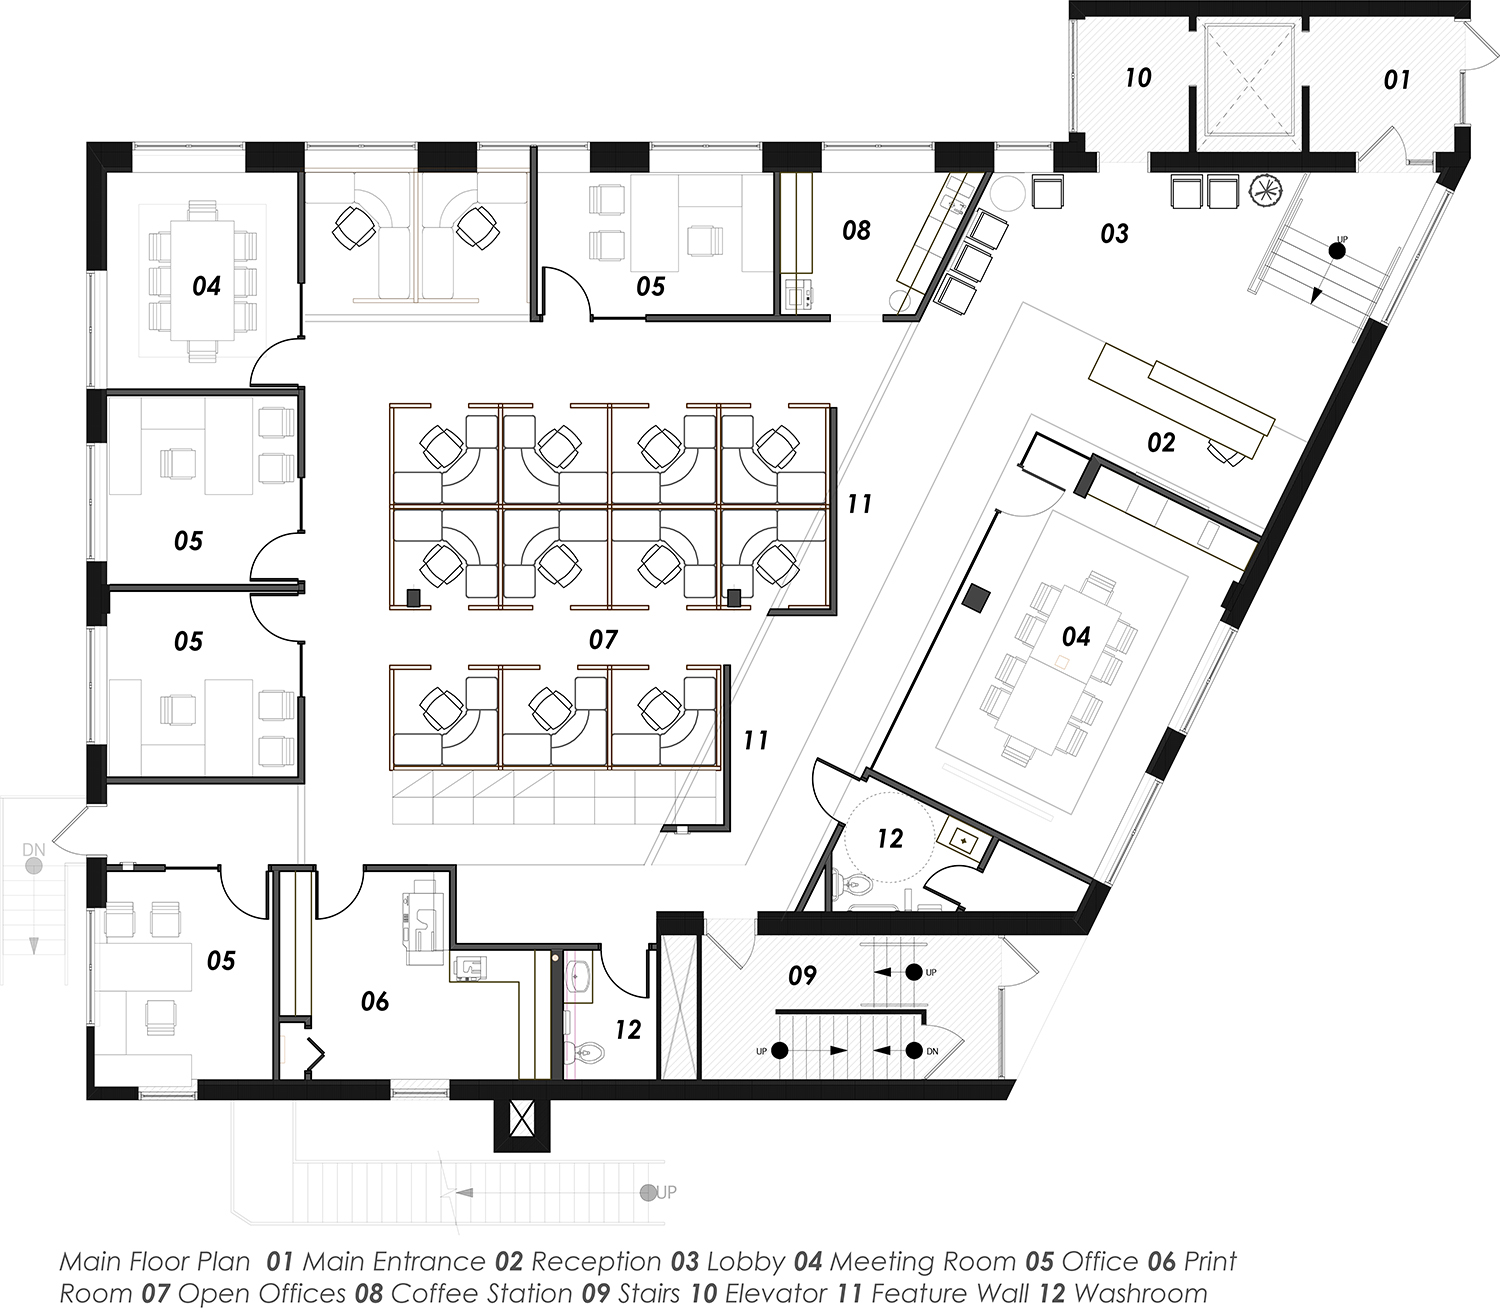 2013.51 A2-01 FLOOR PLAN ST.MARY'S v2017